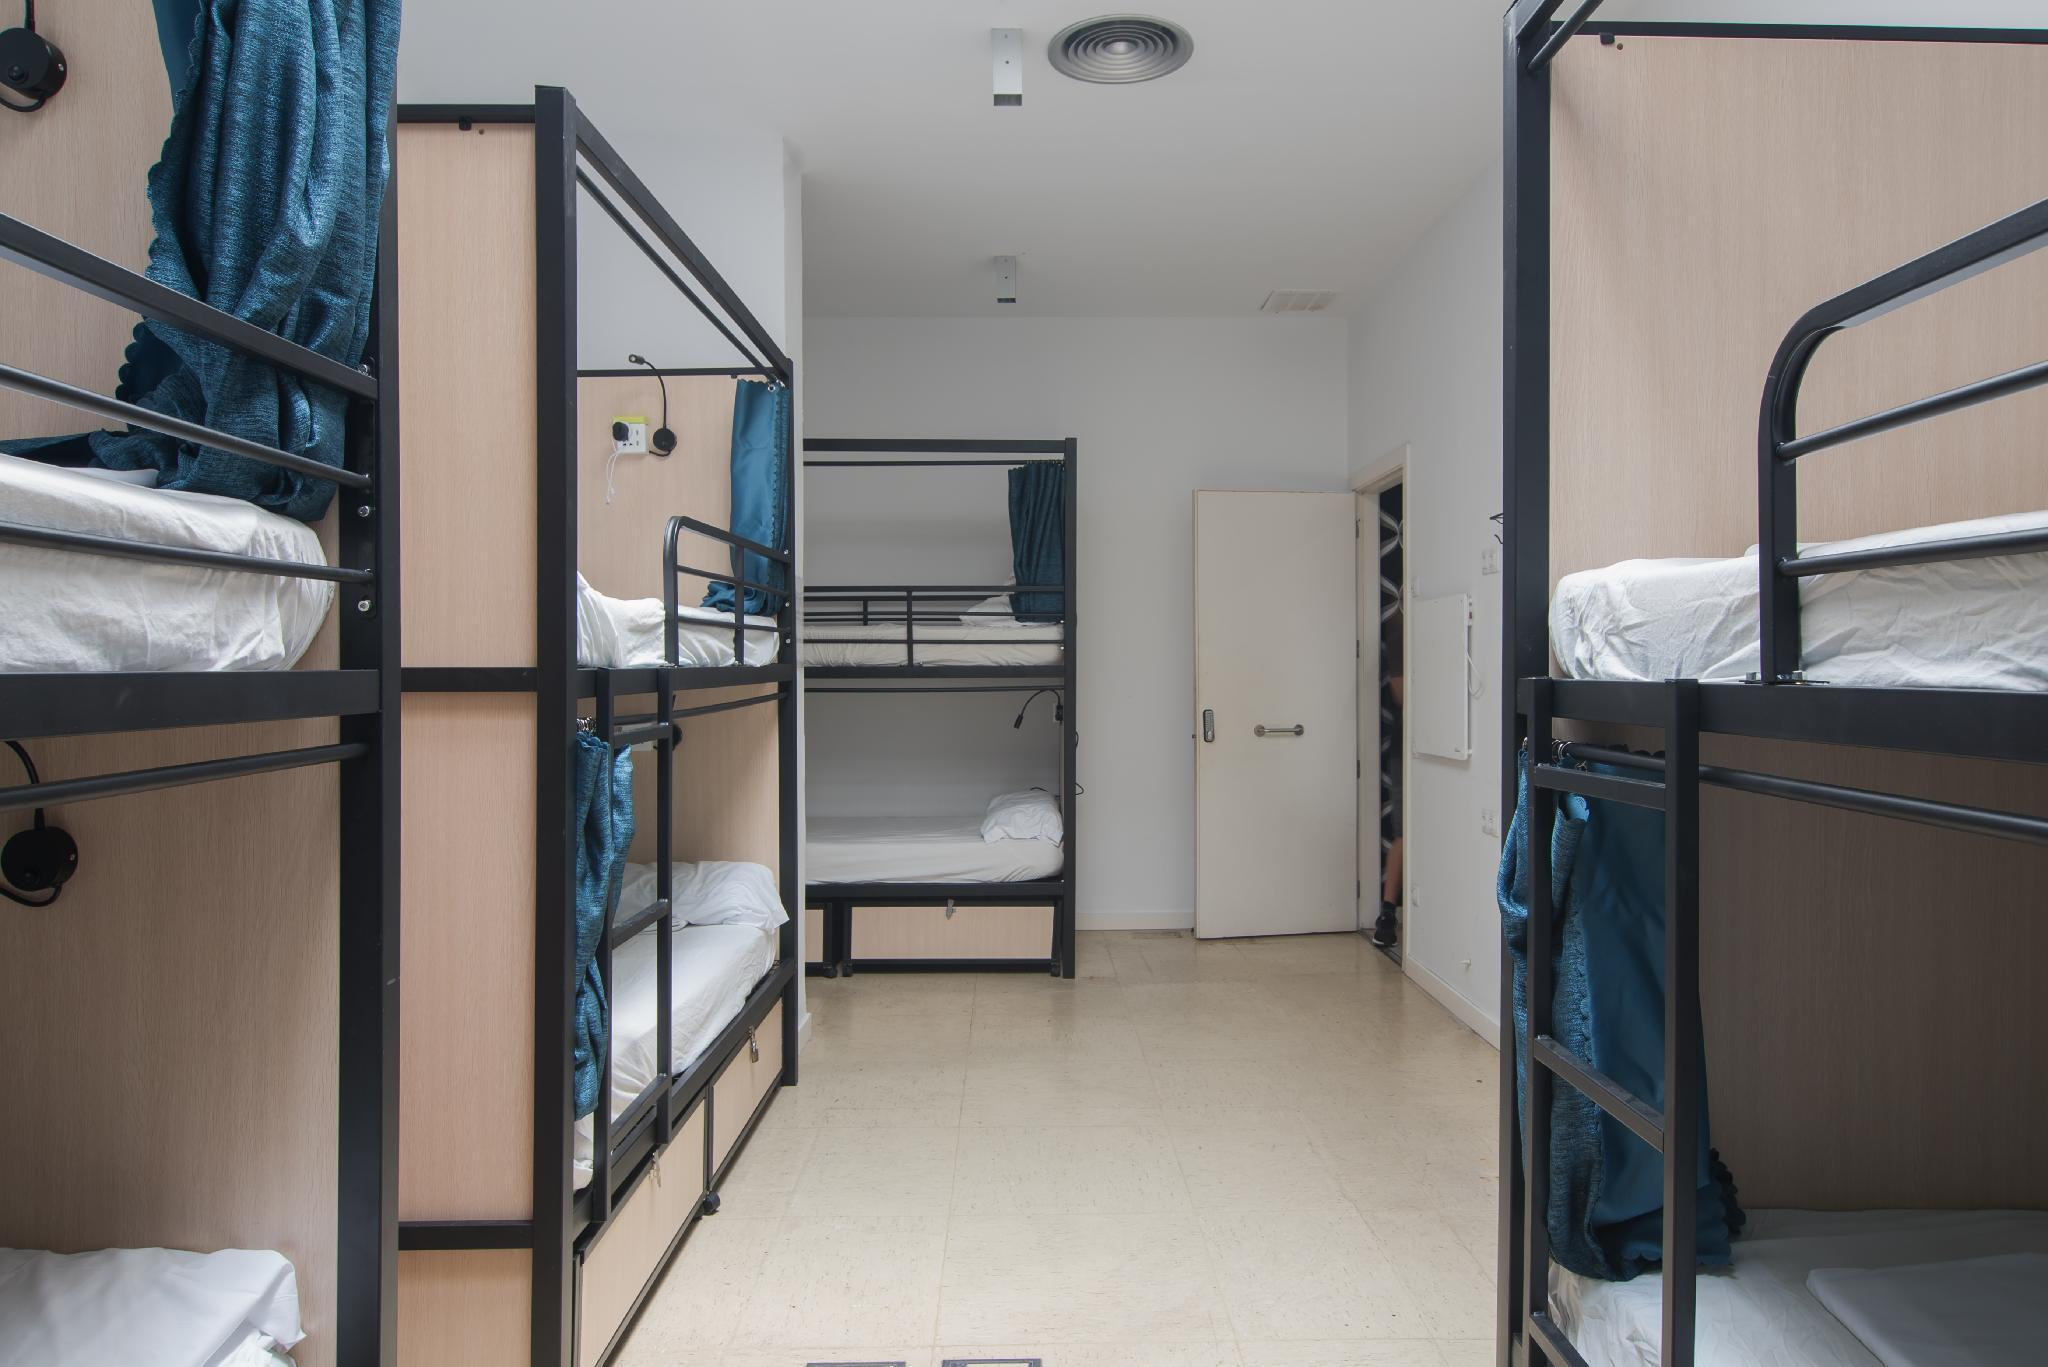 1 Person in 8-Bed Dormitory with Shared Bathroom - Mixed